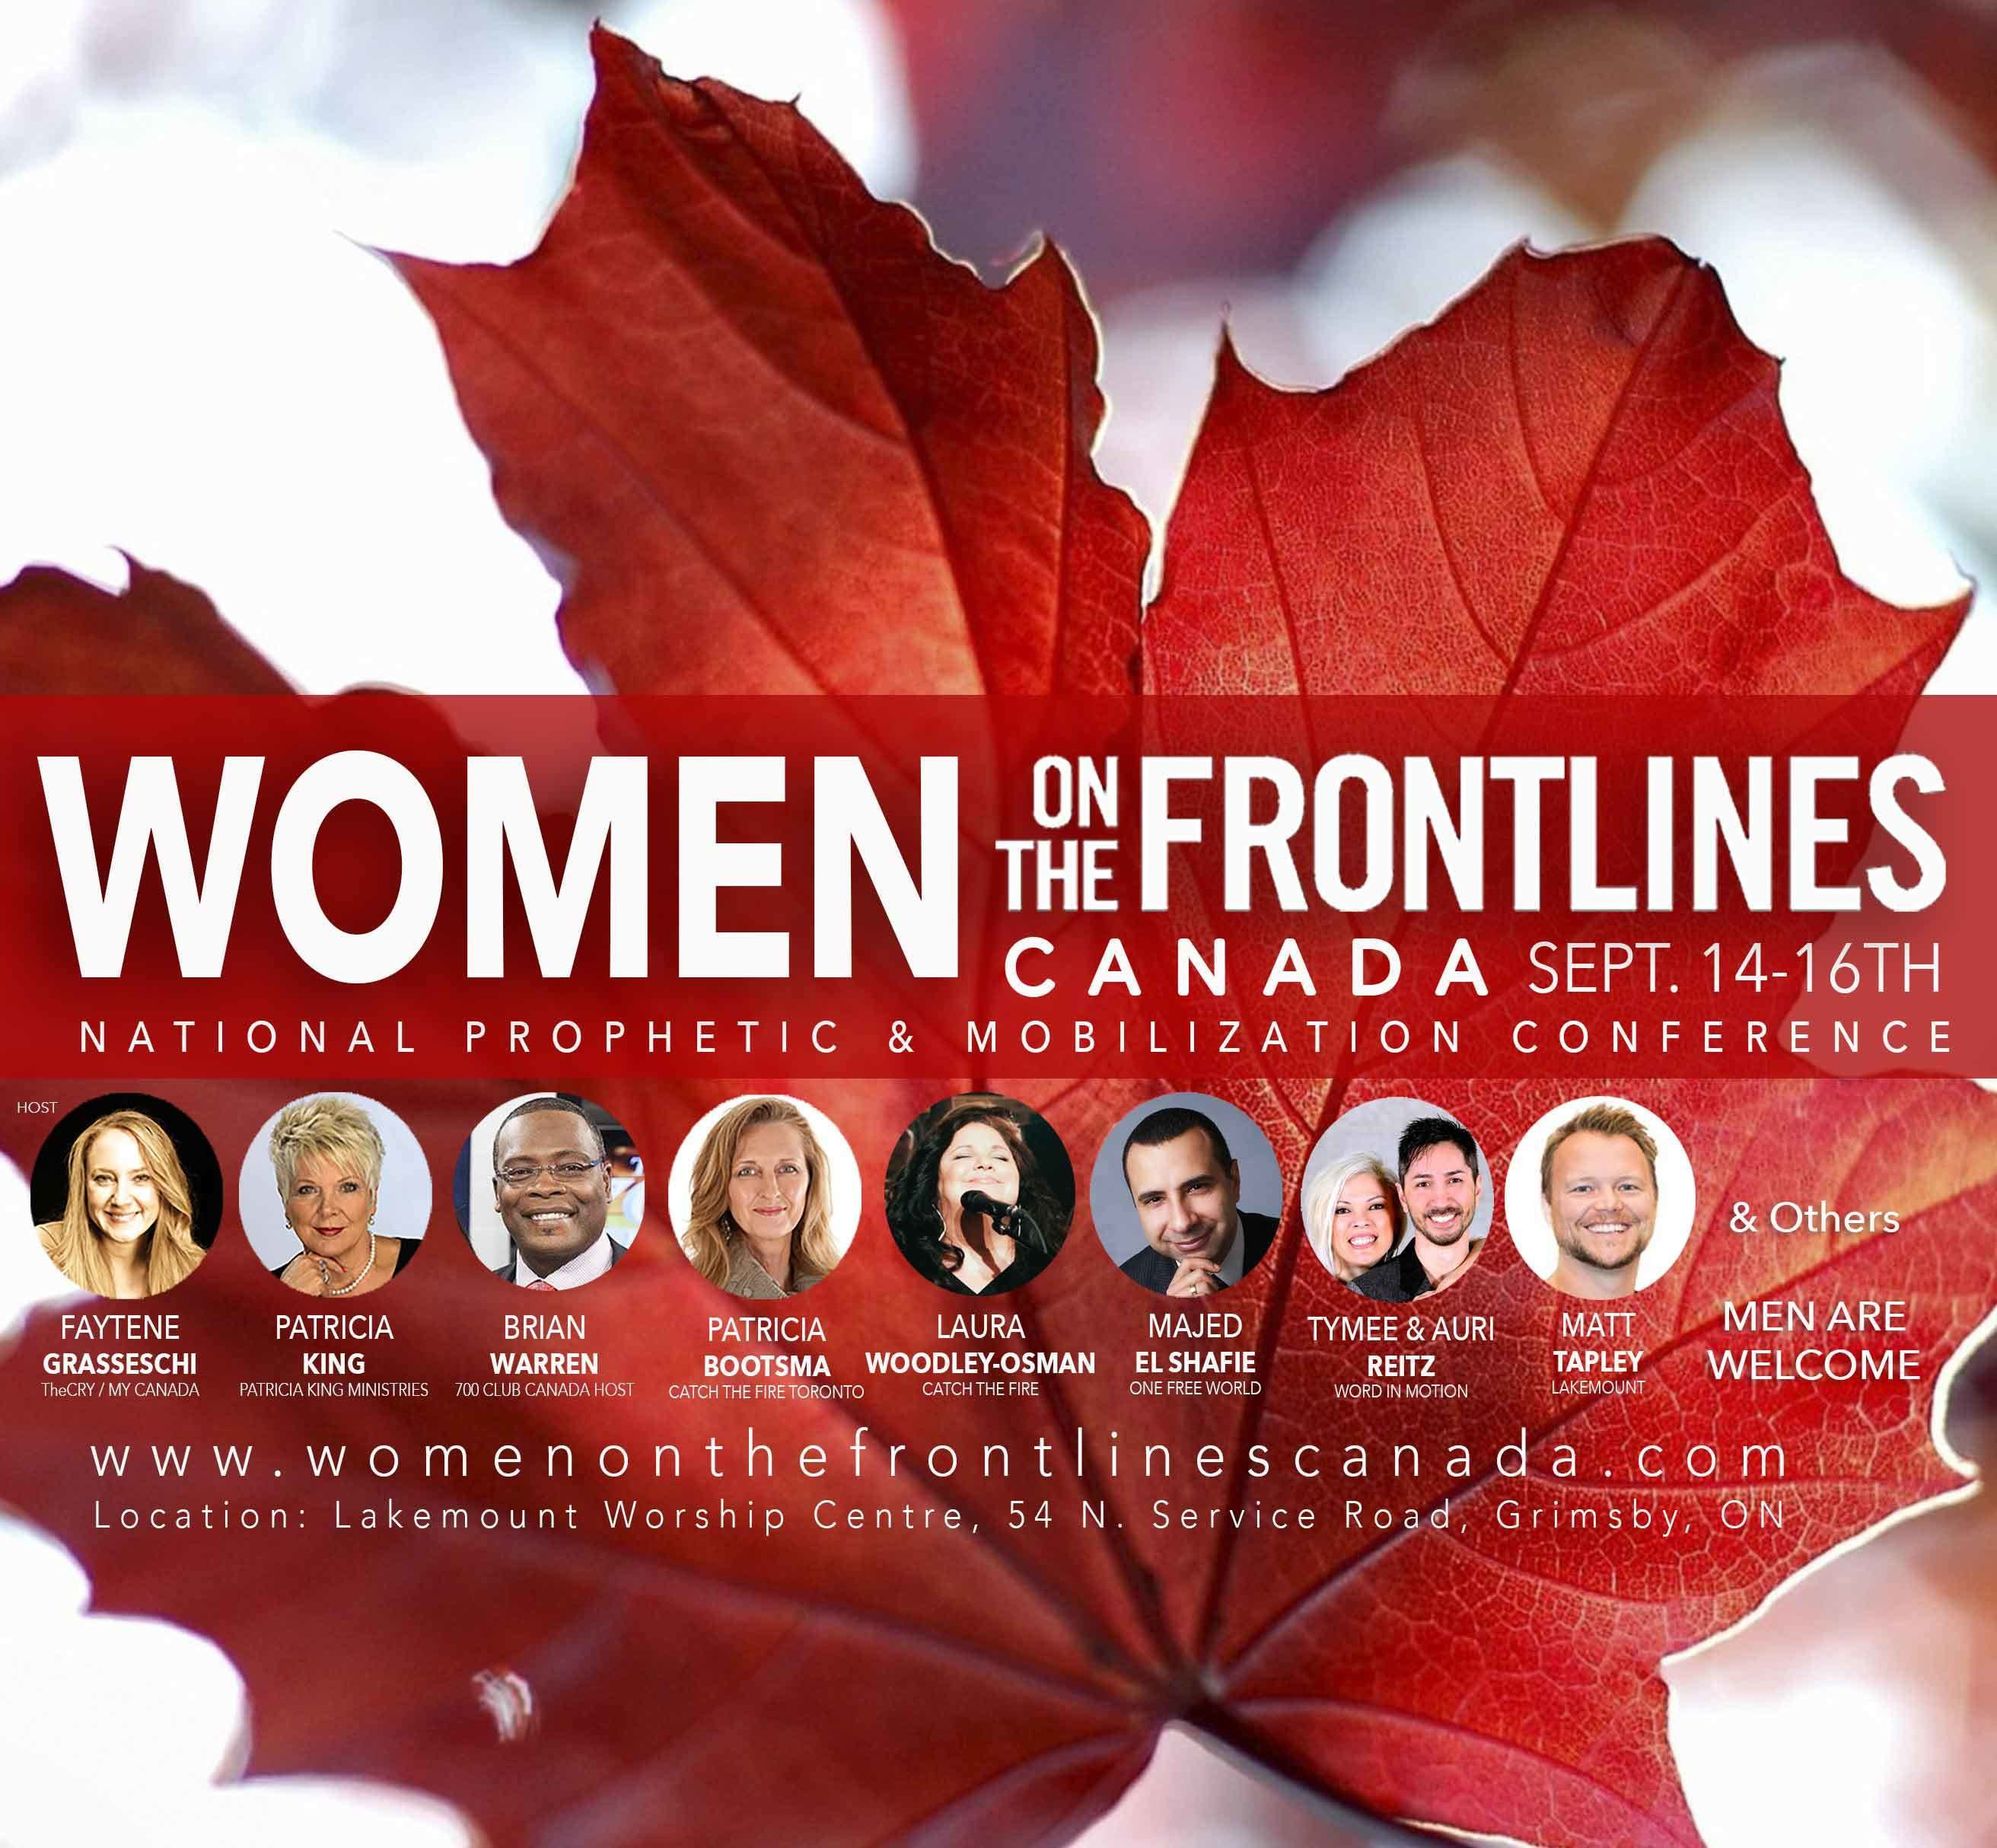 Women on the Frontlines Canada - MP3 Set by Digital Download // Majed El Shafie & Patricia King (Saturday Night) 00008